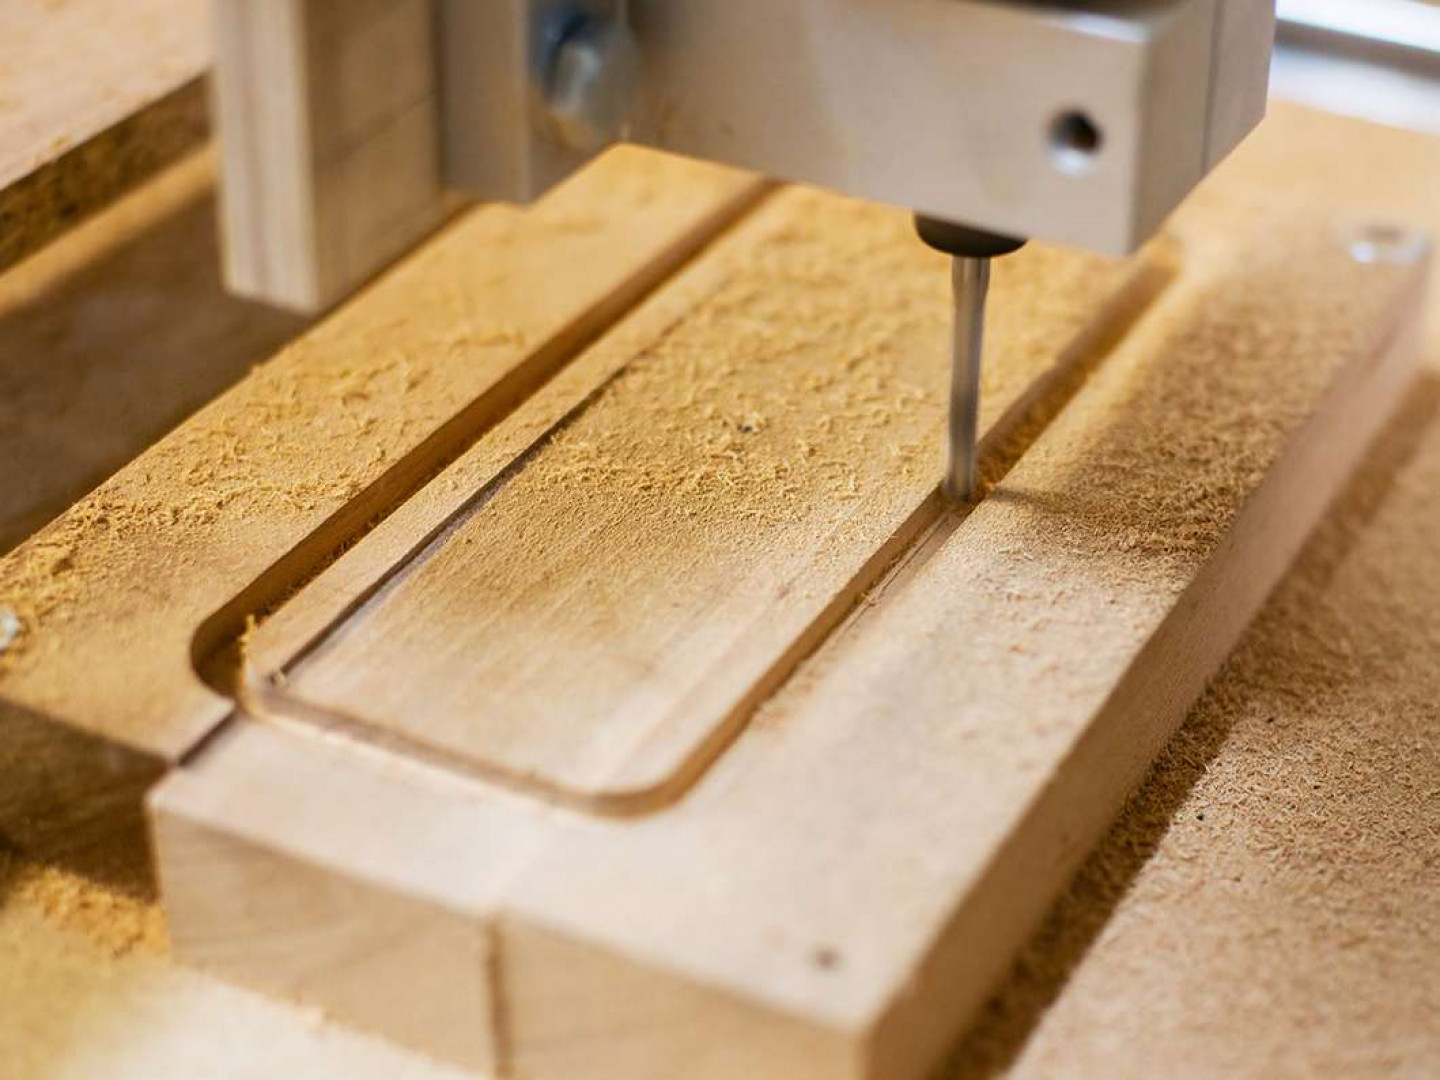 Check out the benefits of using a CNC machine